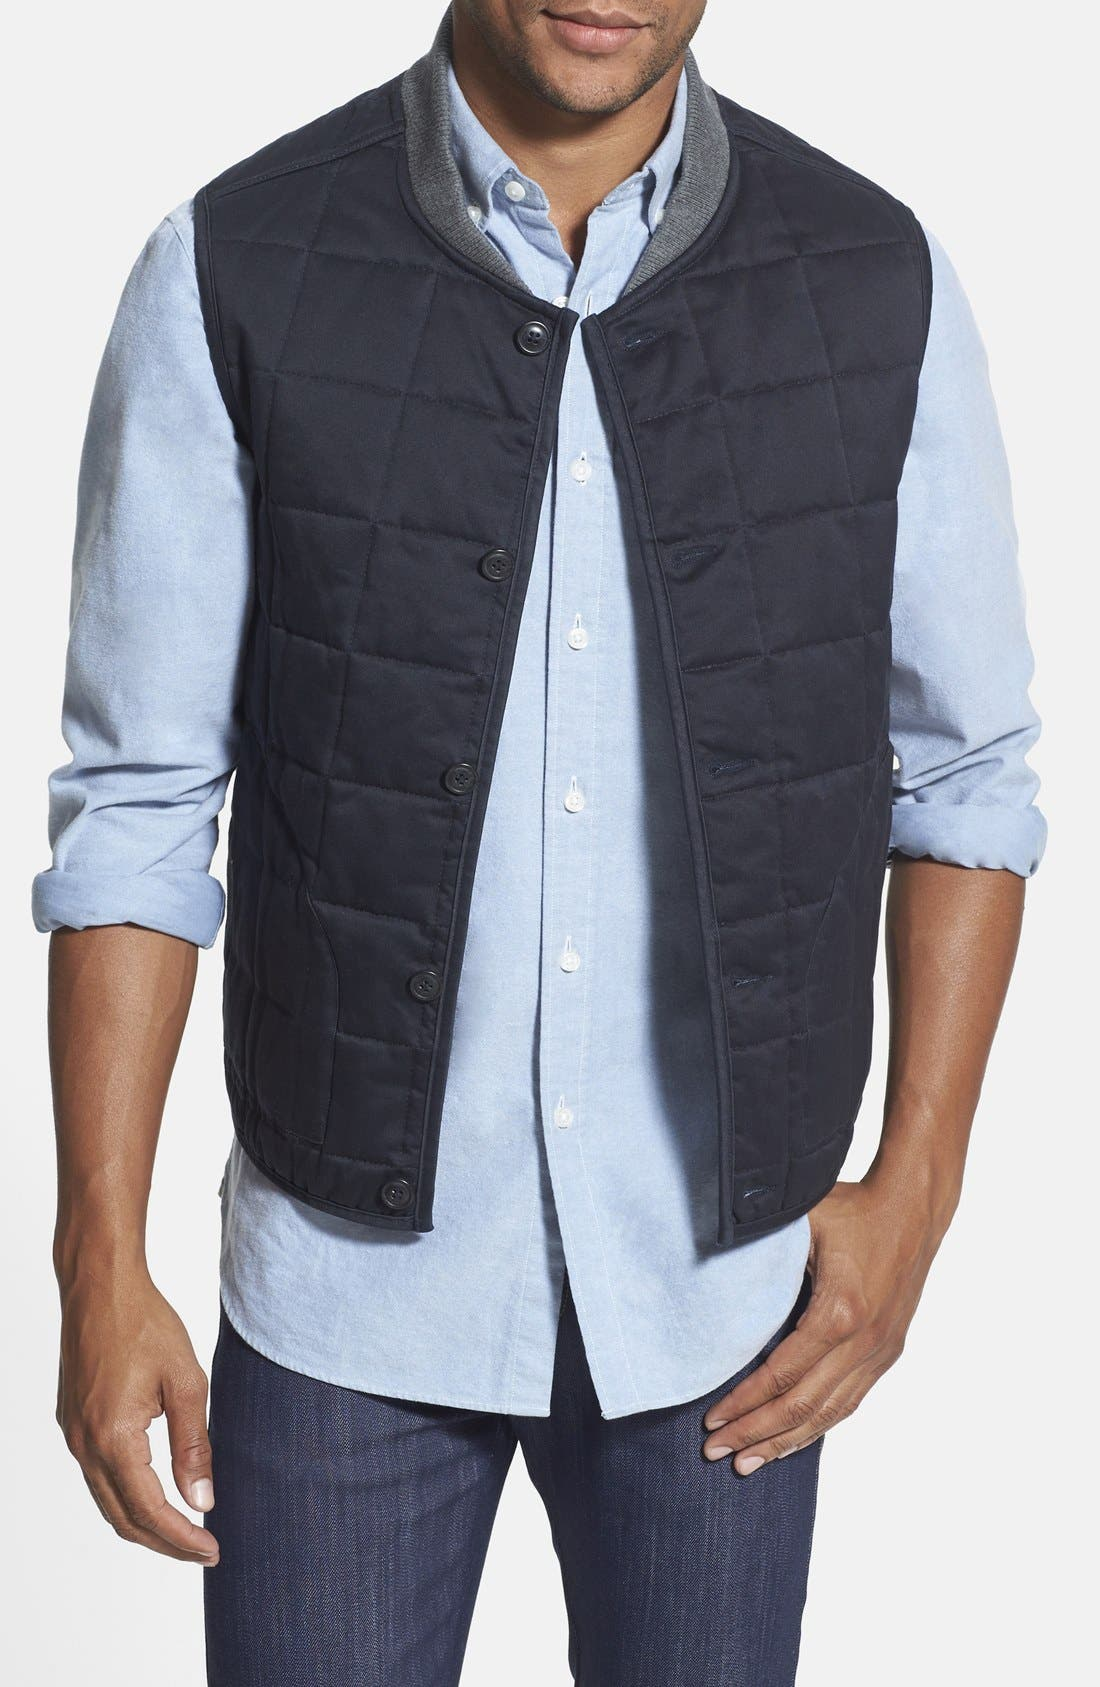 Alternate Image 1 Selected - Wallin & Bros. Trim Fit Quilted Vest